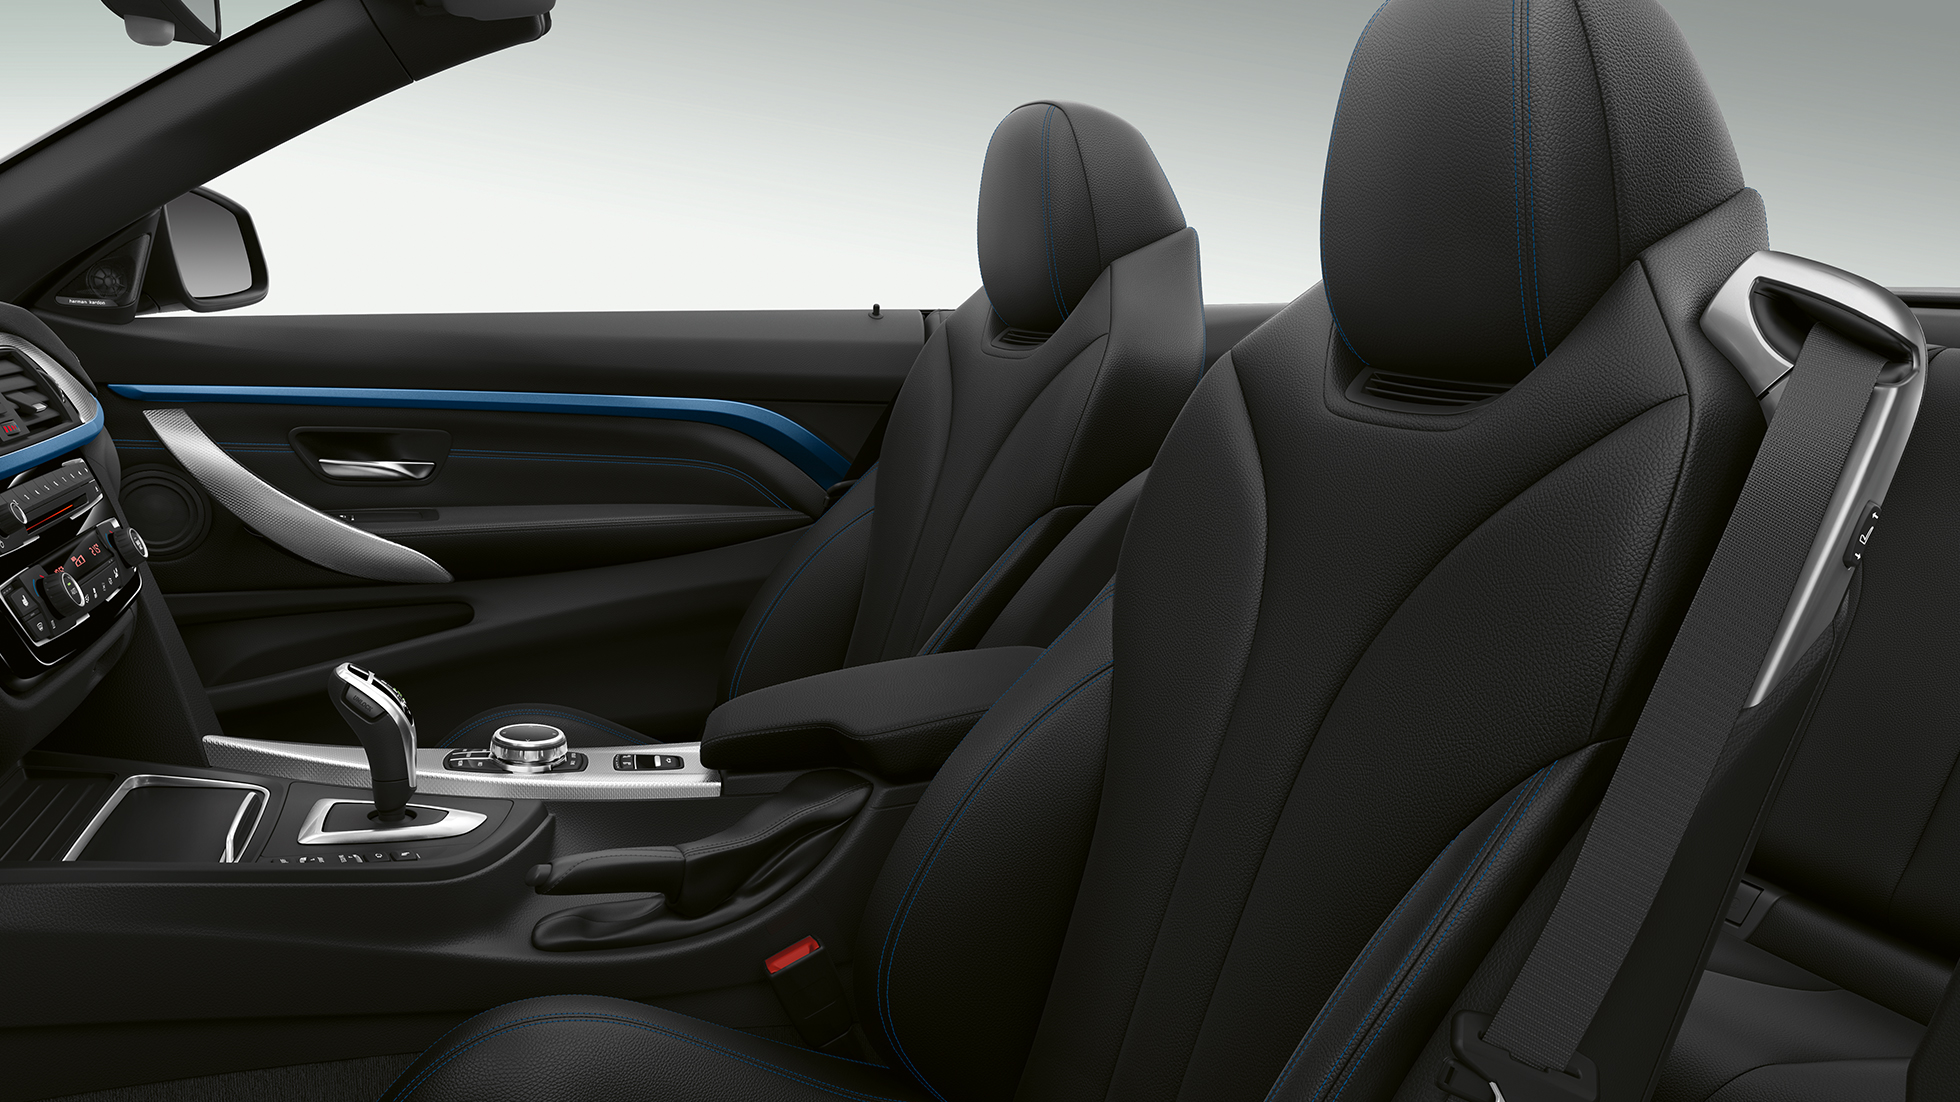 BMW 4 Series Cabriolet, Model M Sport interior